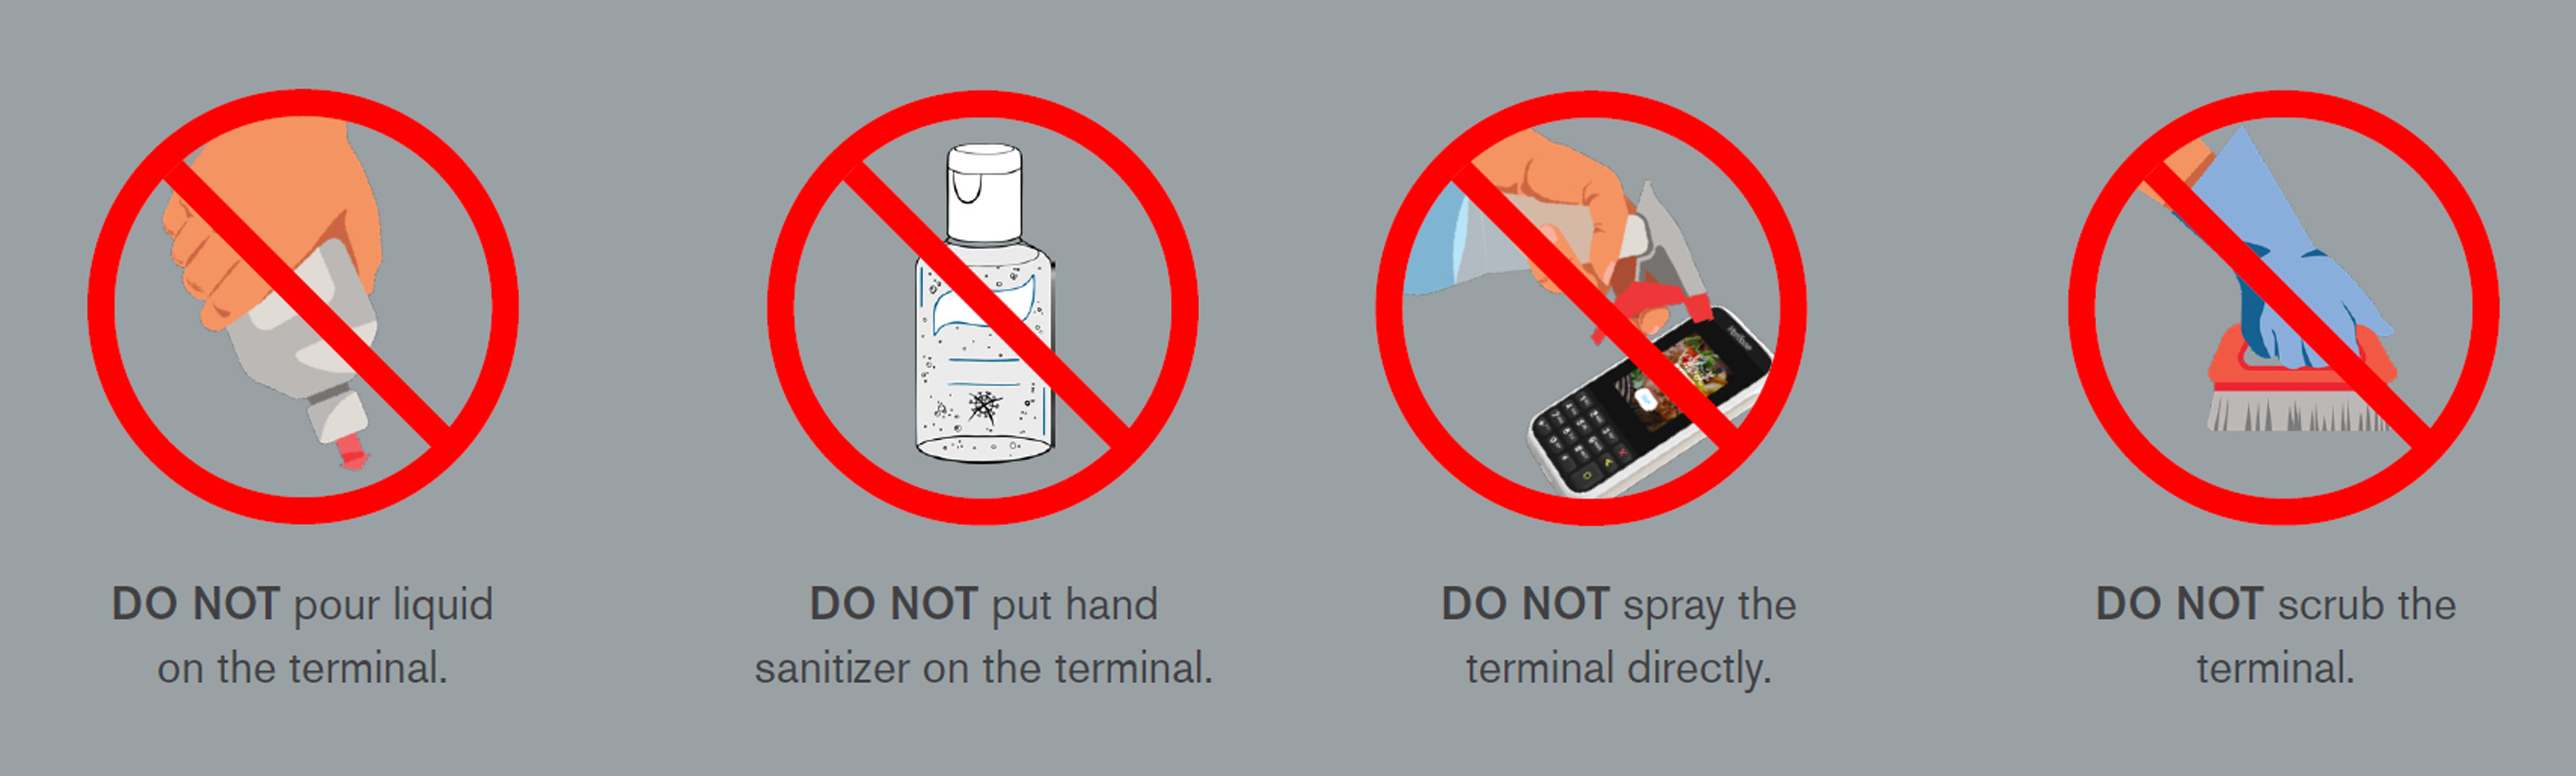 Cleaning best practices for your devices. DO NOT pour liquid on the terminal. DO NOT put hand sanitizer on the terminal. DO NOT spray the terminal directly. DO NOT scrub the terminal.